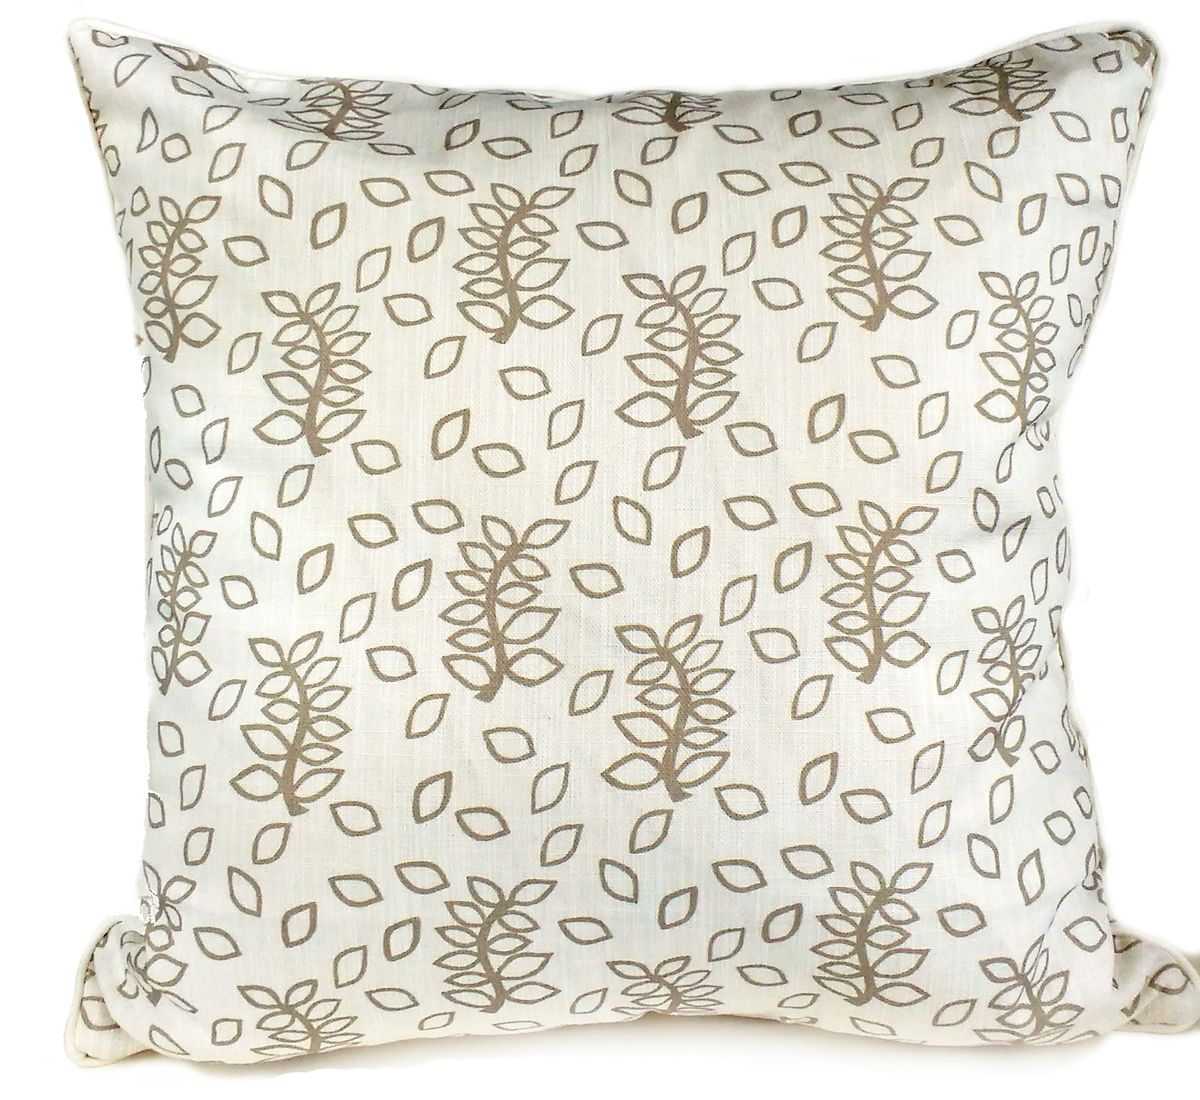 Ivory leaves linen scatter cushion